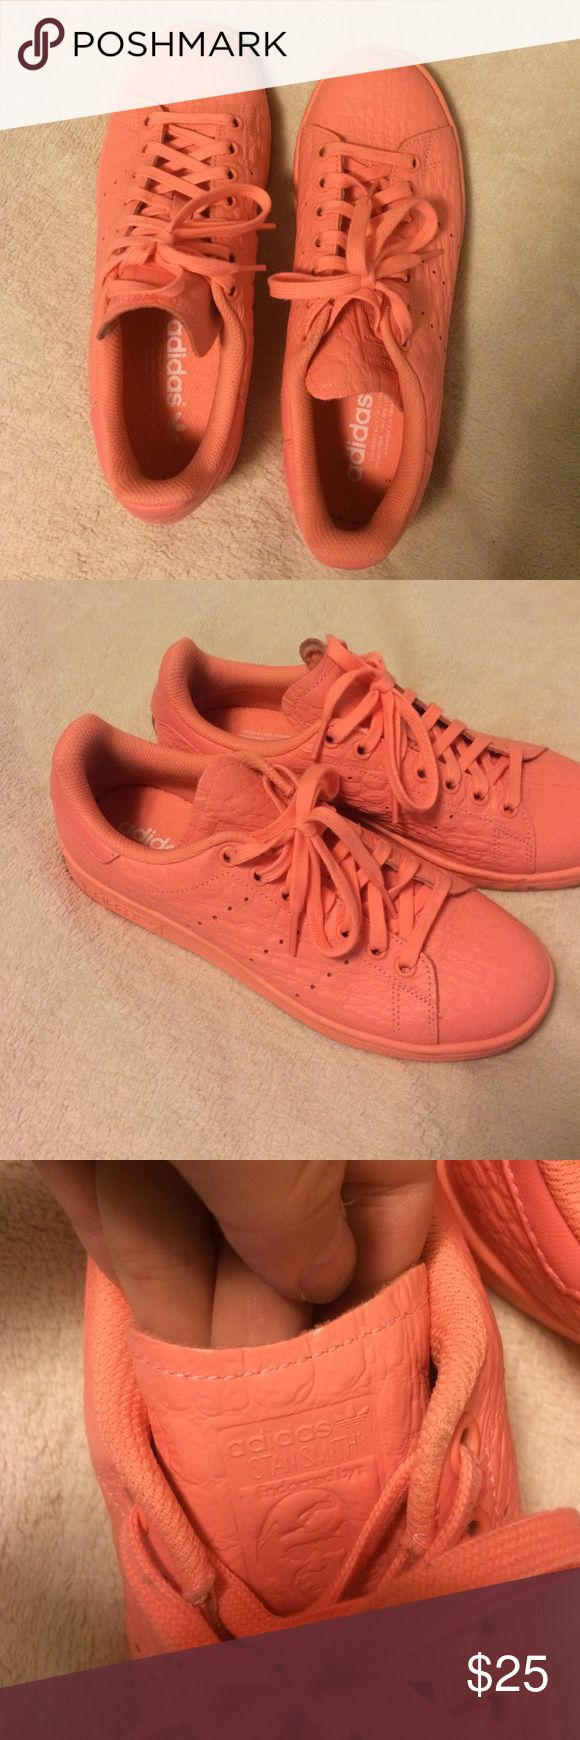 Adidas Stan Smiths Worn less than 5 times. Bright coral/ pink. Snake skin texture. Fits more like an 8 or 8.5. Adidas Shoes Sneakers